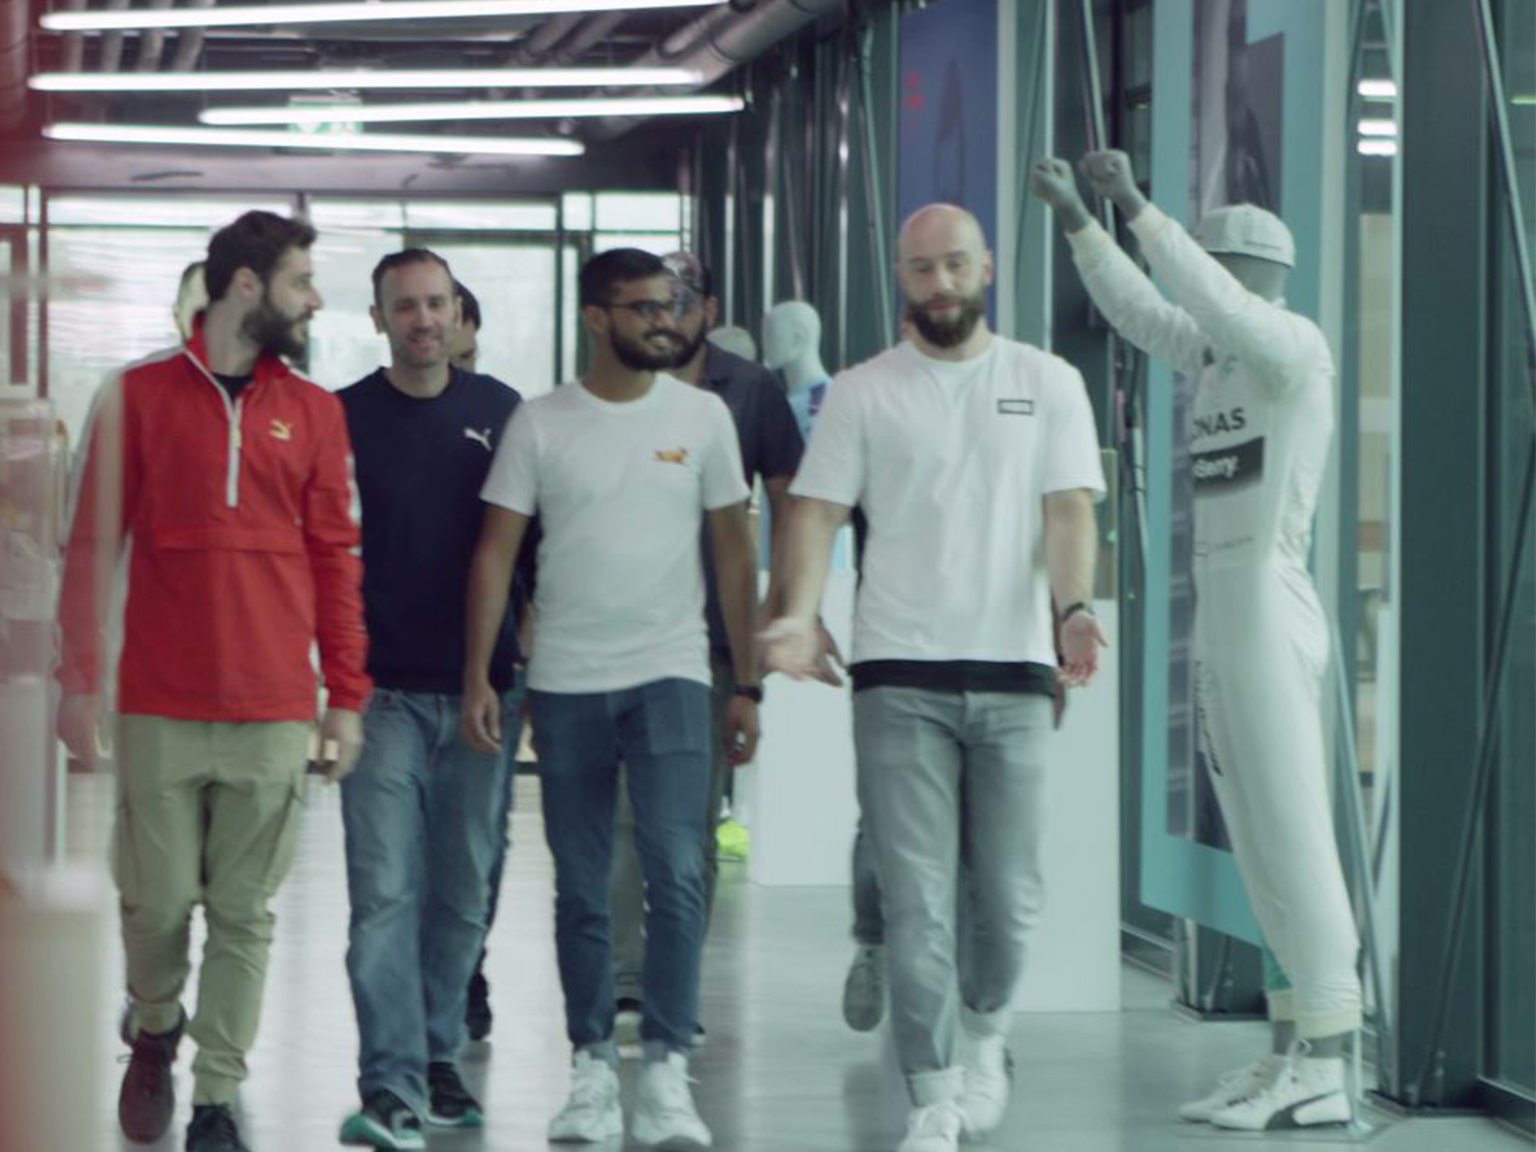 PUMA employees waling